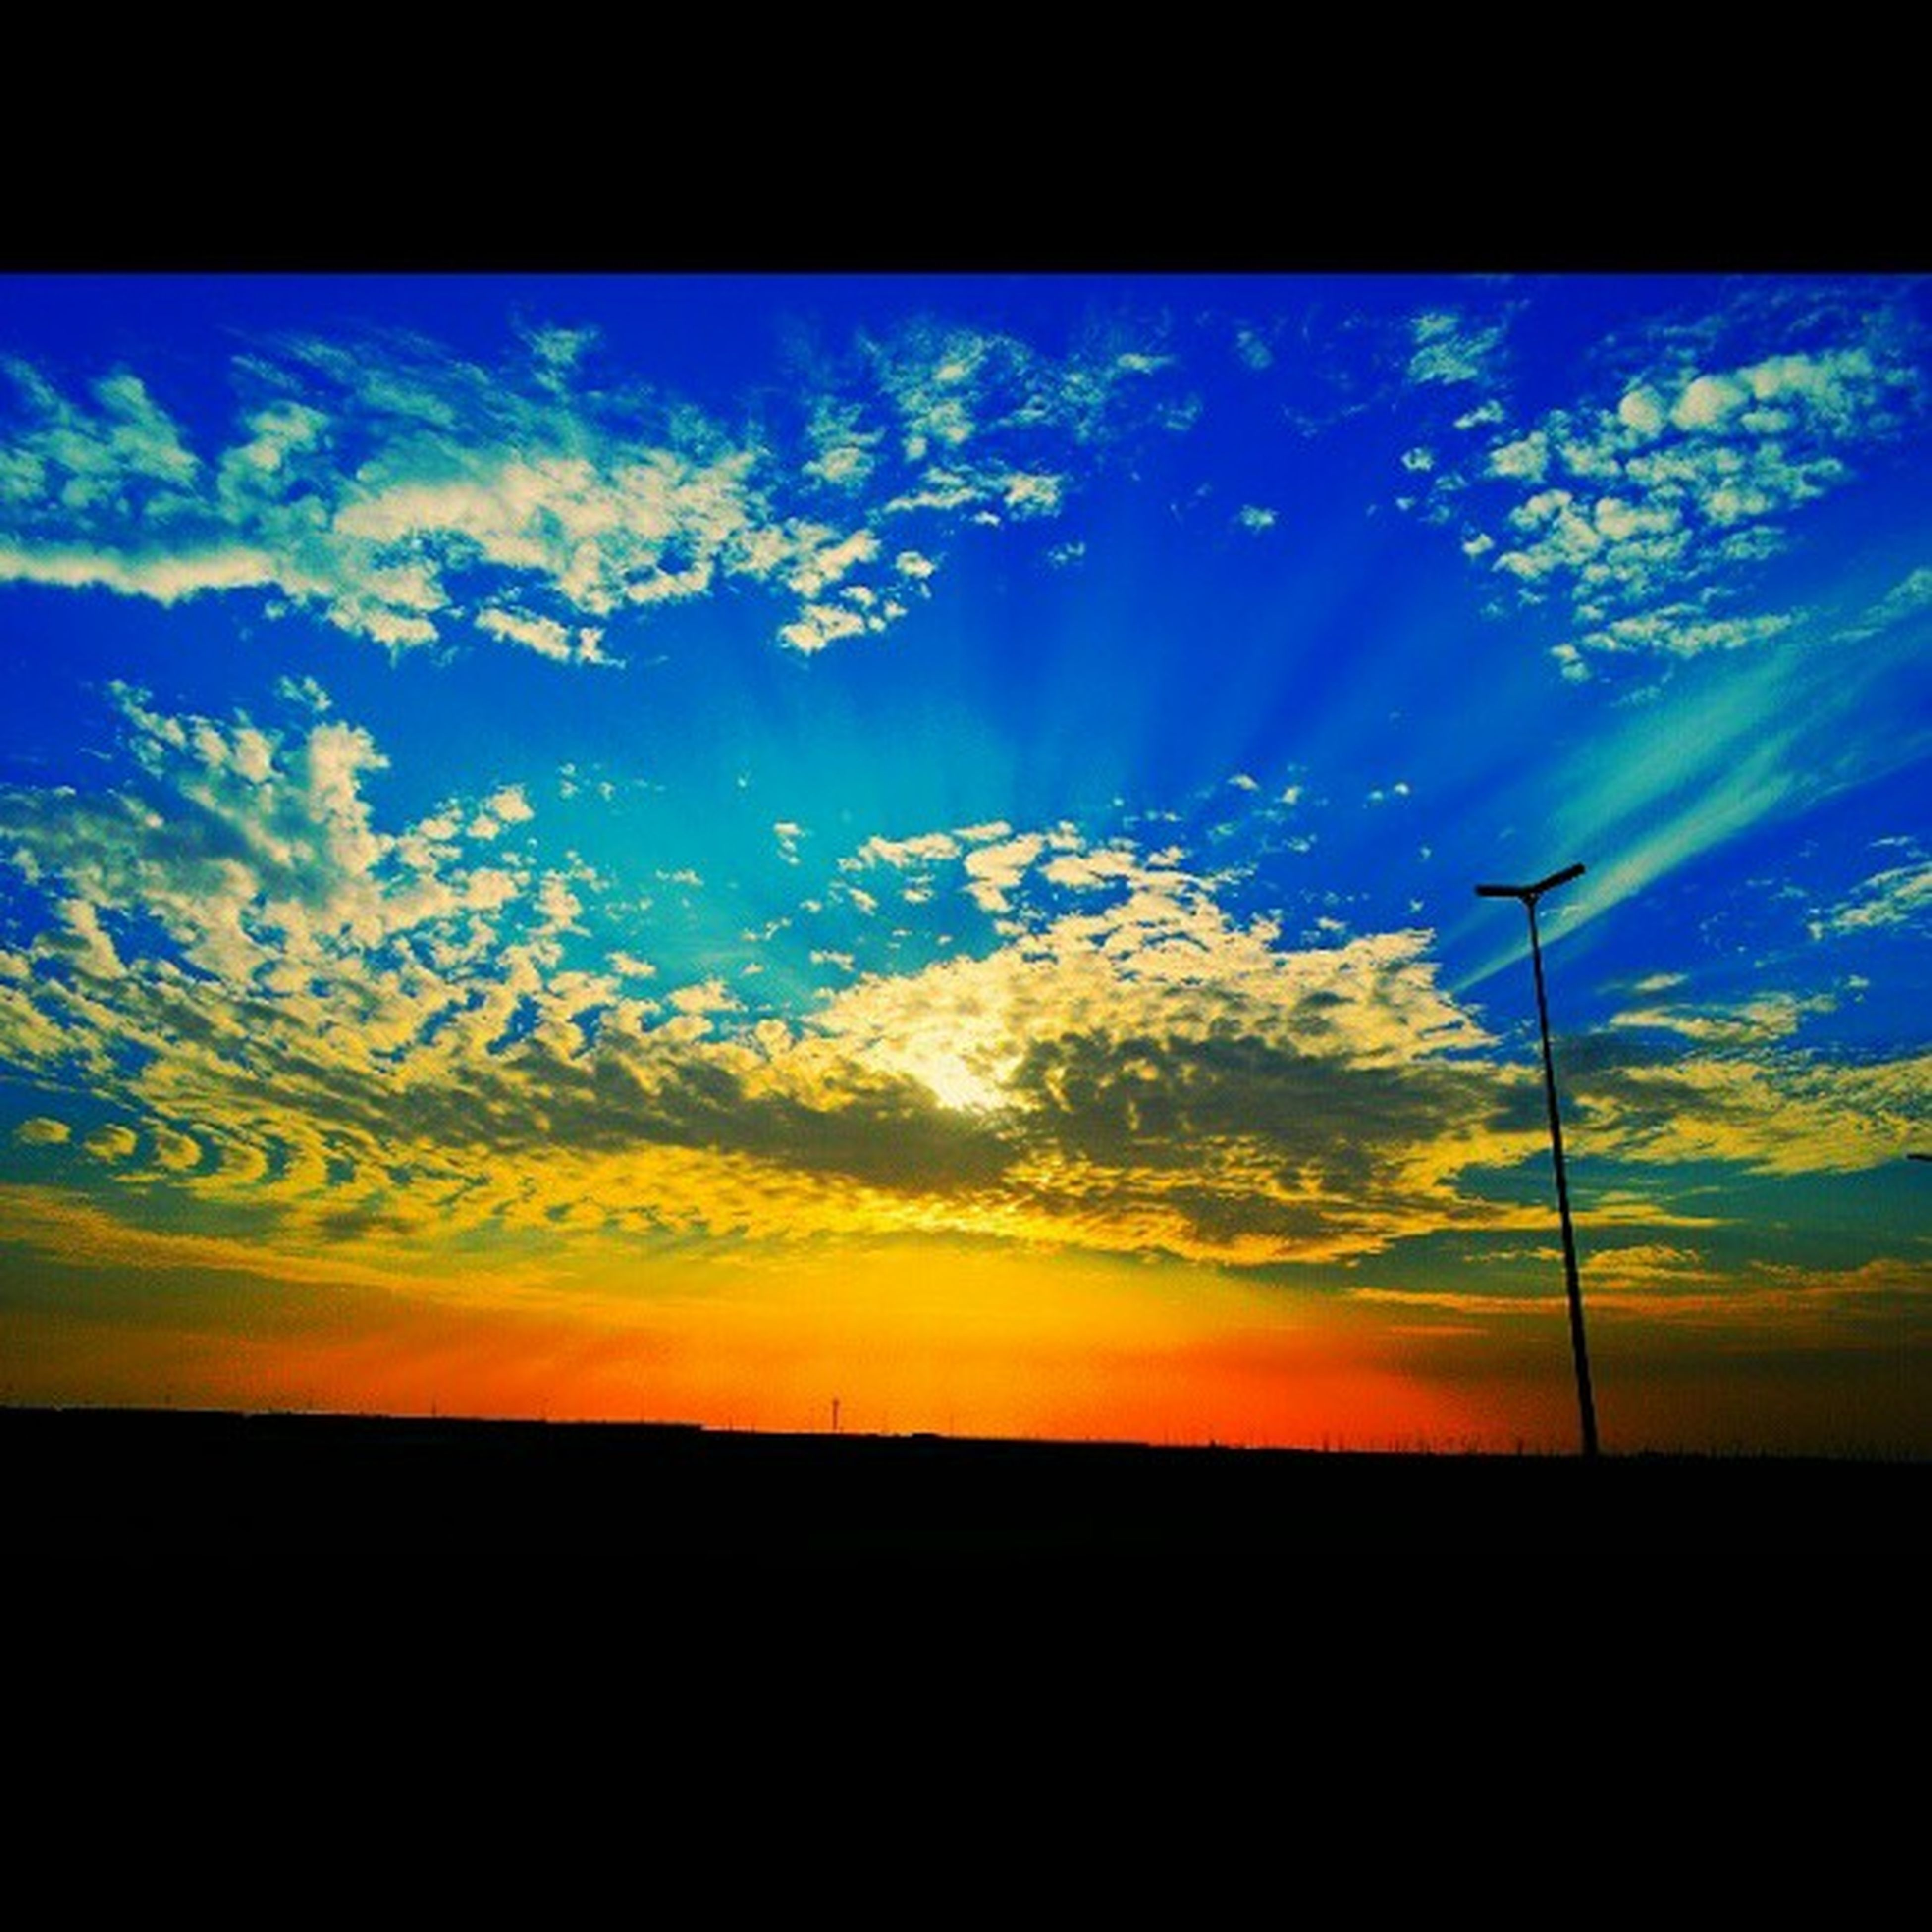 sunset, silhouette, tranquil scene, scenics, sky, beauty in nature, tranquility, landscape, nature, field, blue, idyllic, transfer print, cloud, cloud - sky, orange color, dark, auto post production filter, horizon over land, outdoors